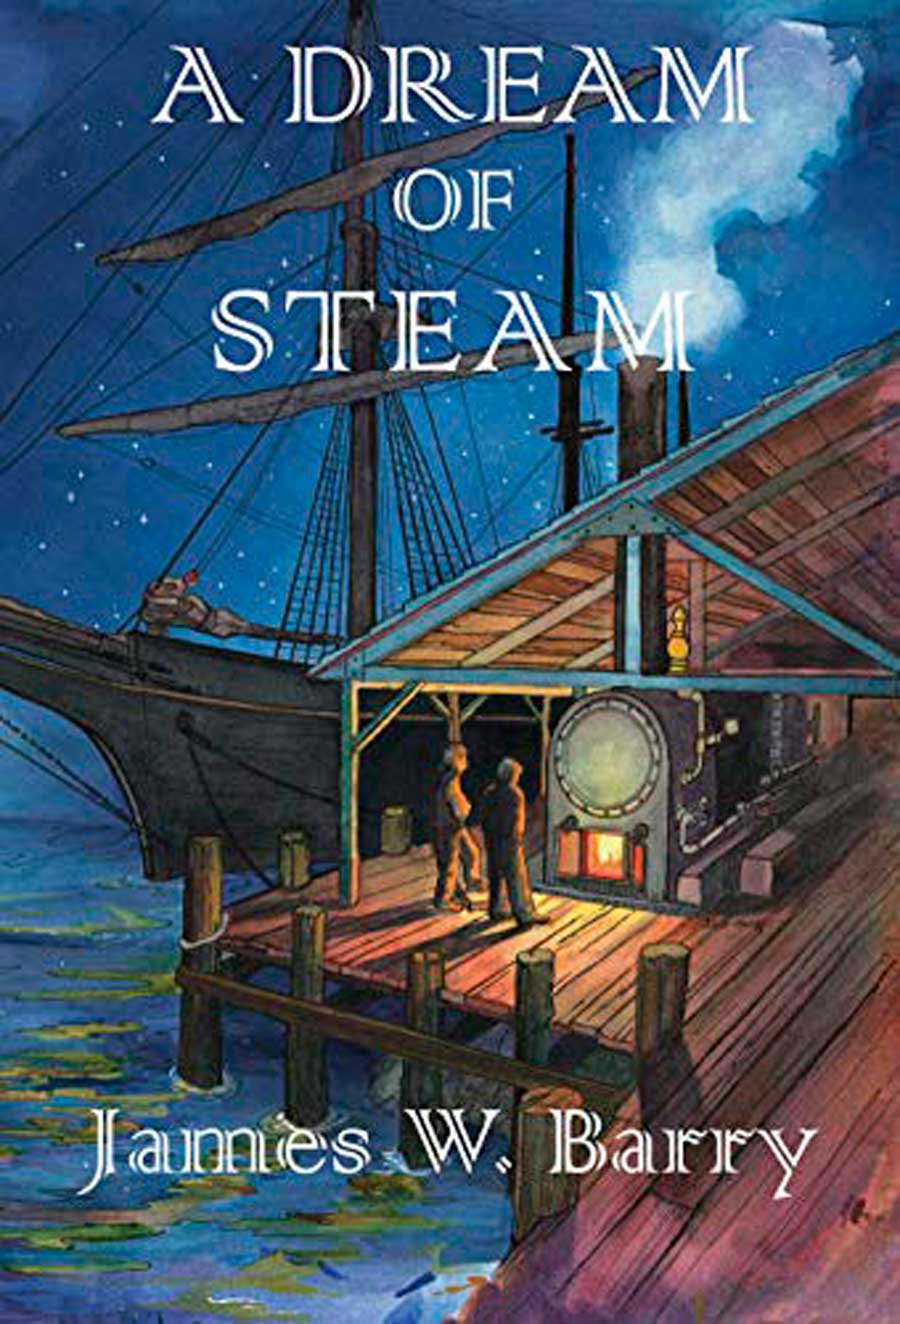 A Dream of Steam by James W. Barry